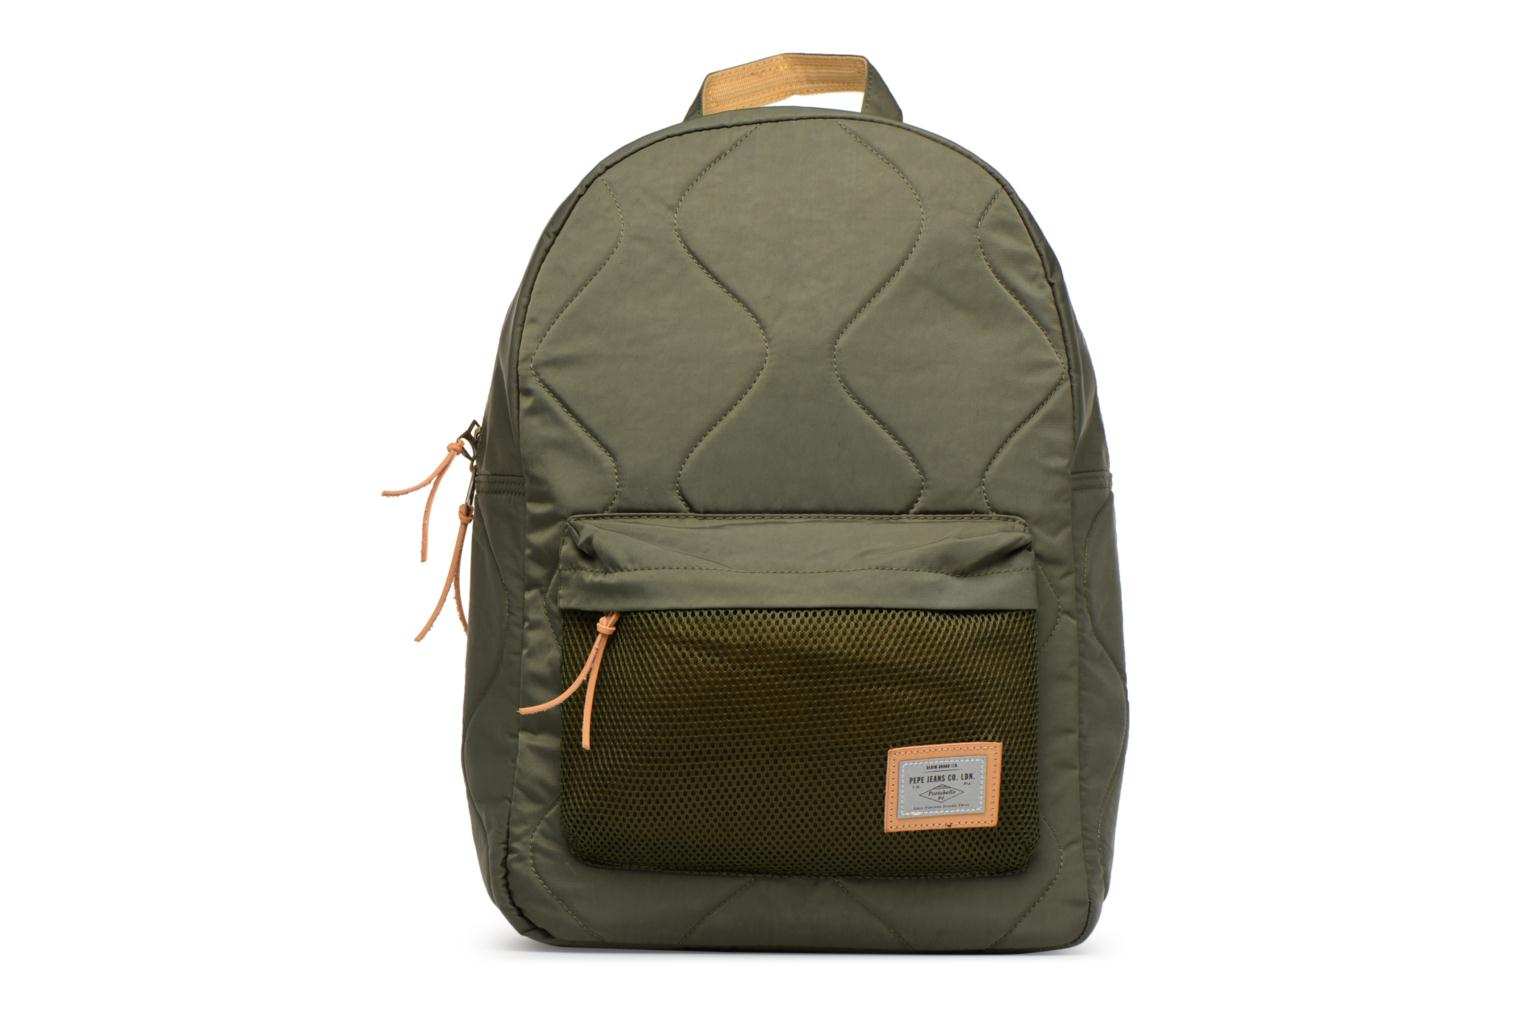 jeans Pepe 771 CORK BACKPACK Pepe jeans CORK BACKPACK zFS66q